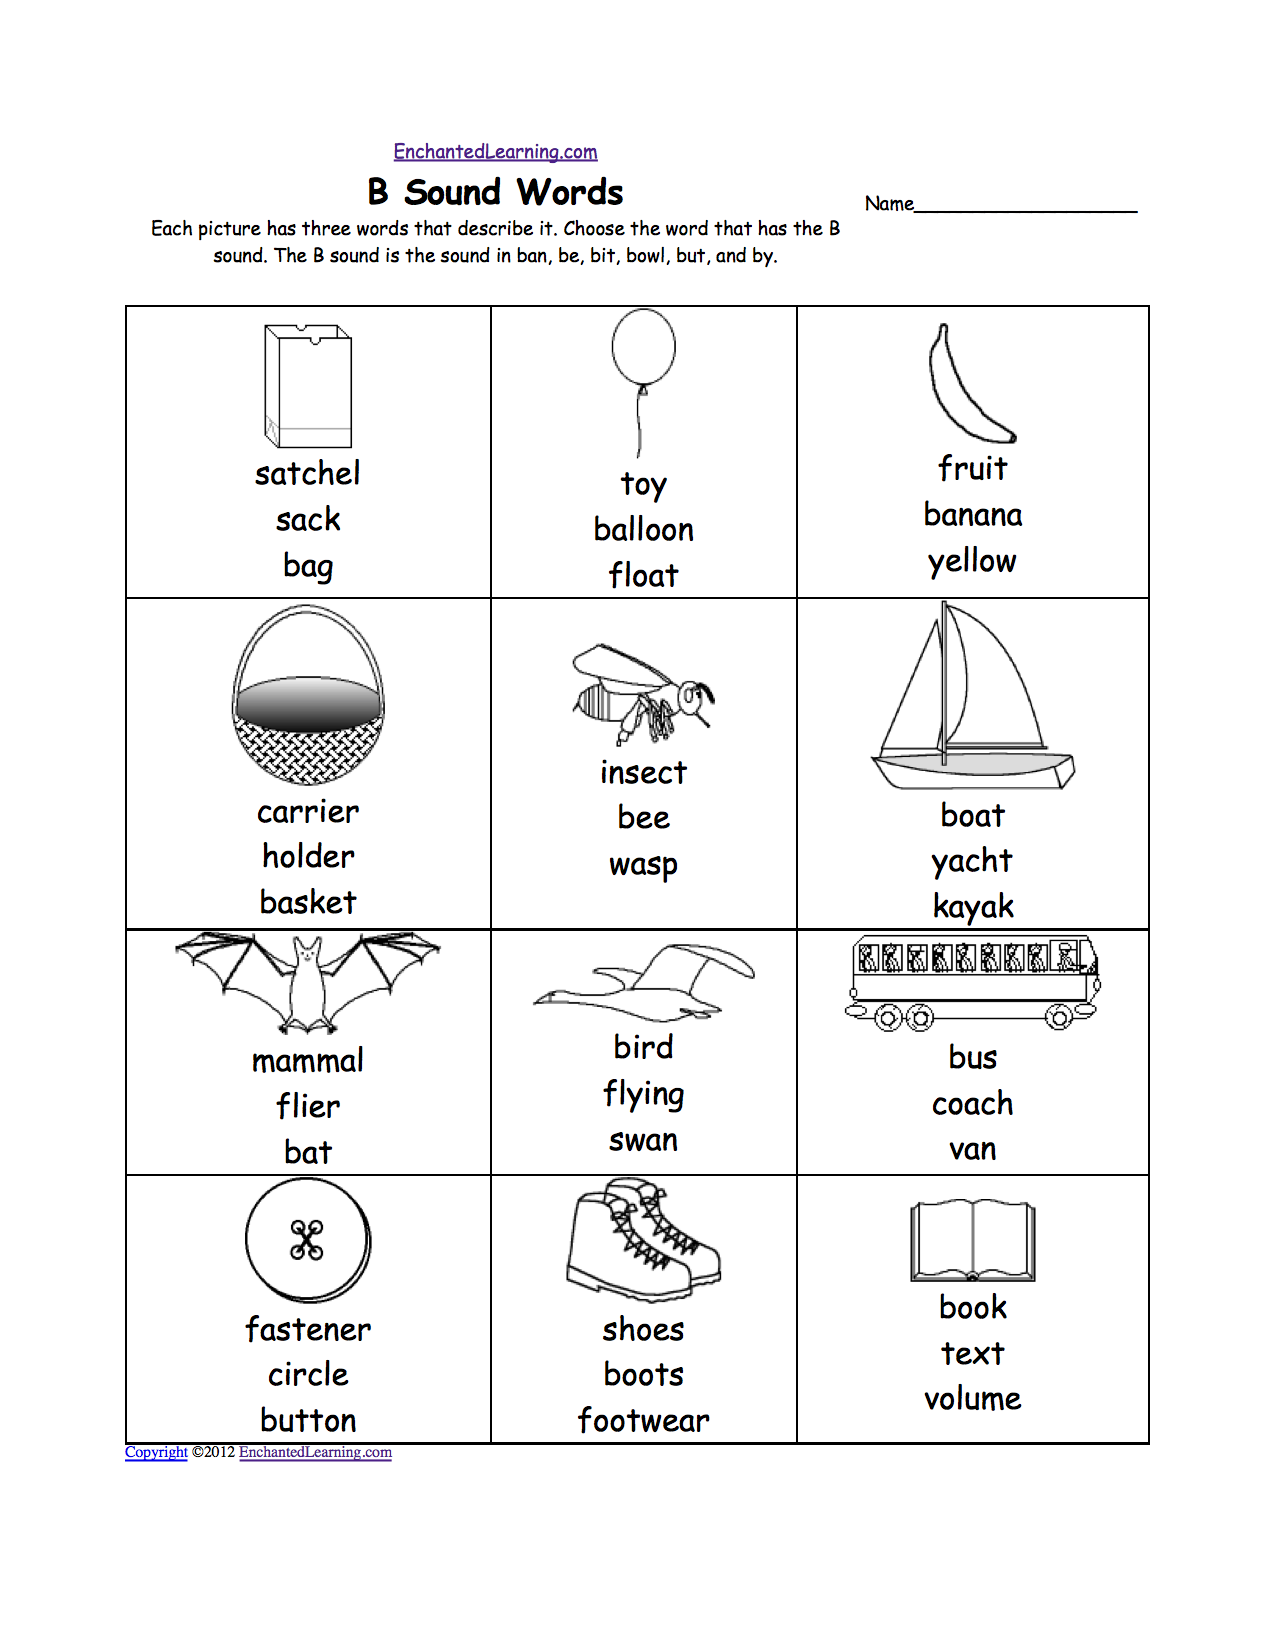 Aldiablosus  Marvelous Phonics Worksheets Multiple Choice Worksheets To Print  With Licious Quotbquot Sound Phonics Worksheet Multiple Choice Each Picture Has Three Words That Describe It Choose The Word That Has A Quotbquot Sound The Quotbquot Sound Is The Sound  With Lovely Money Kindergarten Worksheets Also Year  Fractions Worksheet In Addition Customizable Math Worksheets And Long A Vowel Sound Worksheets As Well As Law Of Sines And Cosines Worksheets Additionally Free Math Worksheets Grade  From Enchantedlearningcom With Aldiablosus  Licious Phonics Worksheets Multiple Choice Worksheets To Print  With Lovely Quotbquot Sound Phonics Worksheet Multiple Choice Each Picture Has Three Words That Describe It Choose The Word That Has A Quotbquot Sound The Quotbquot Sound Is The Sound  And Marvelous Money Kindergarten Worksheets Also Year  Fractions Worksheet In Addition Customizable Math Worksheets From Enchantedlearningcom